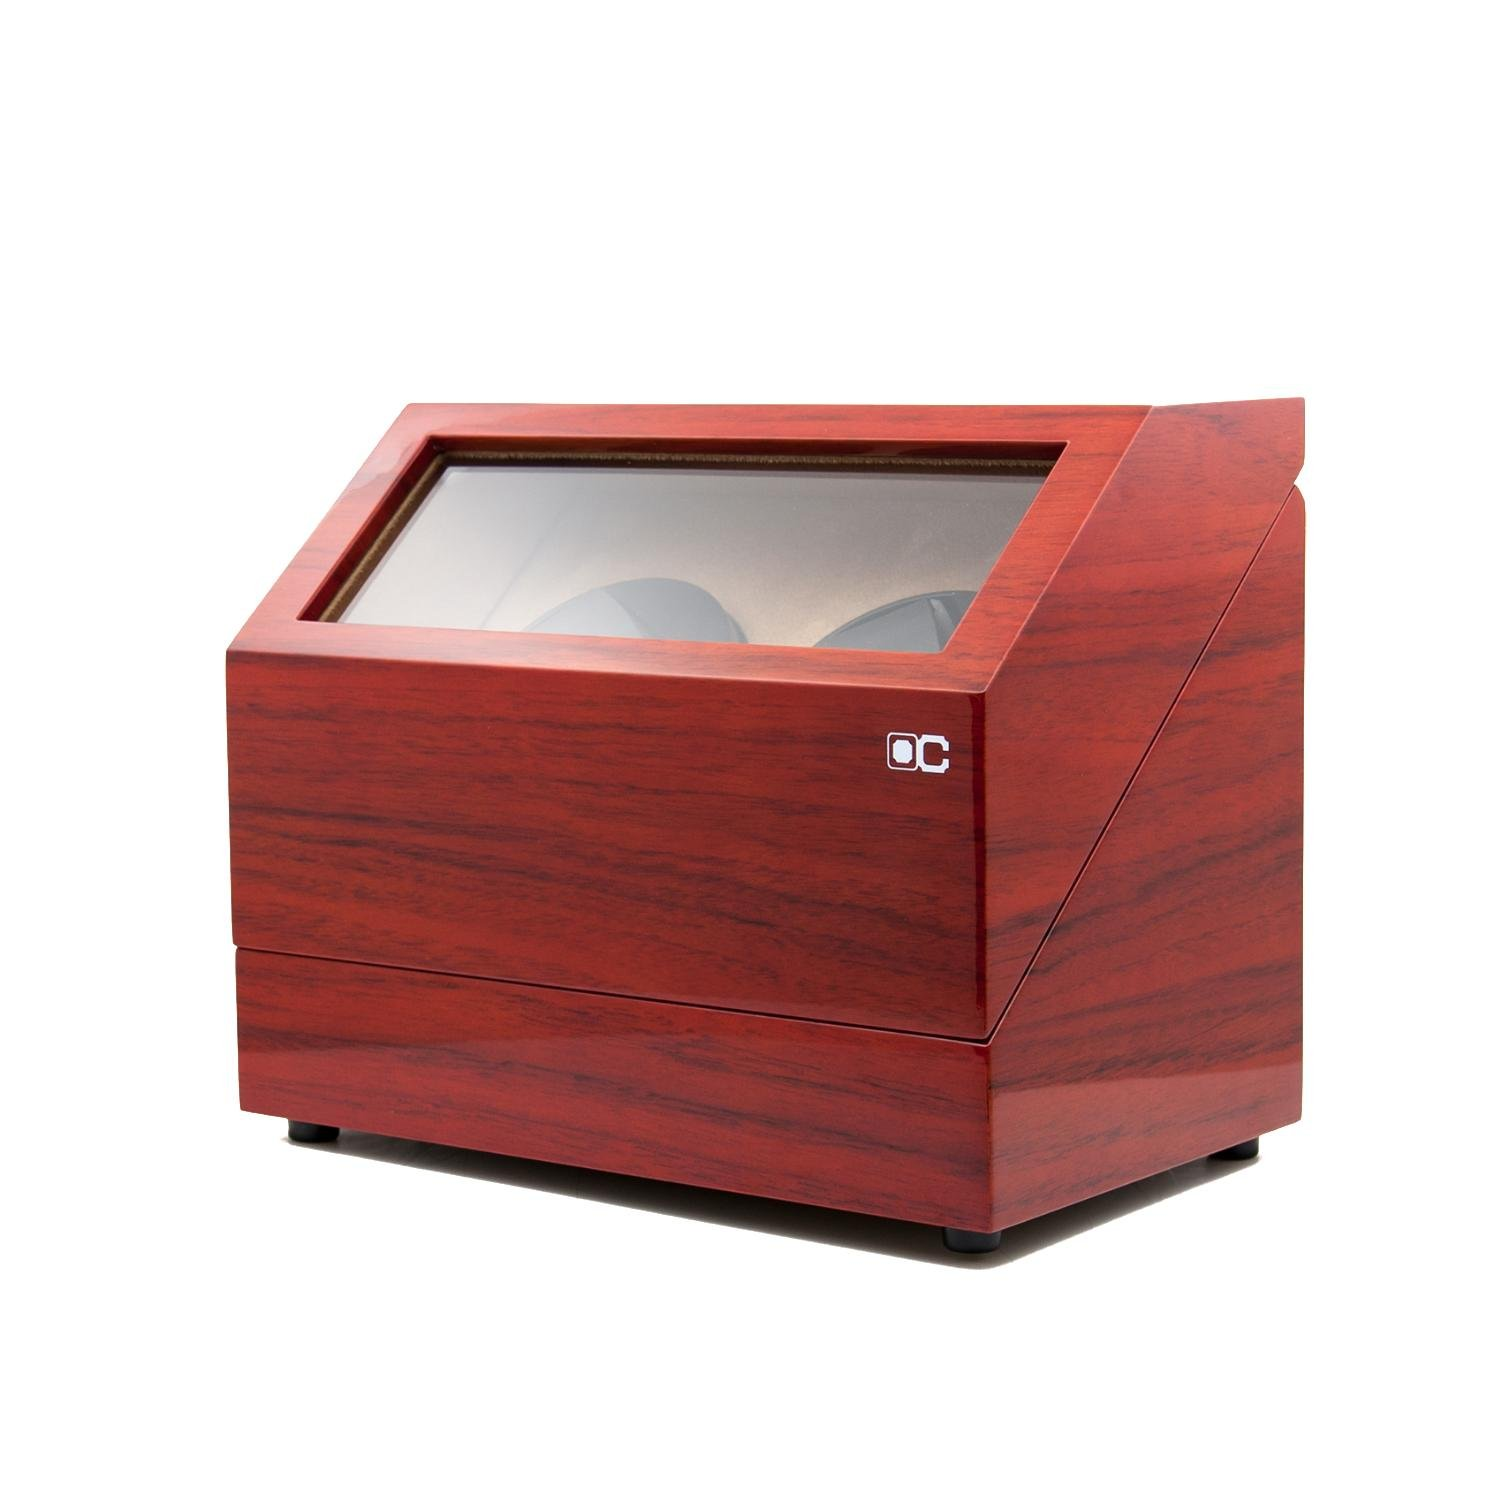 KAIHE-BOX Classic Watch Winders for 2 Watches for automatic Watch Winder Rotator Case Cover Storage(2 color,ww-02132) , Red by KAIHE-BOX (Image #5)